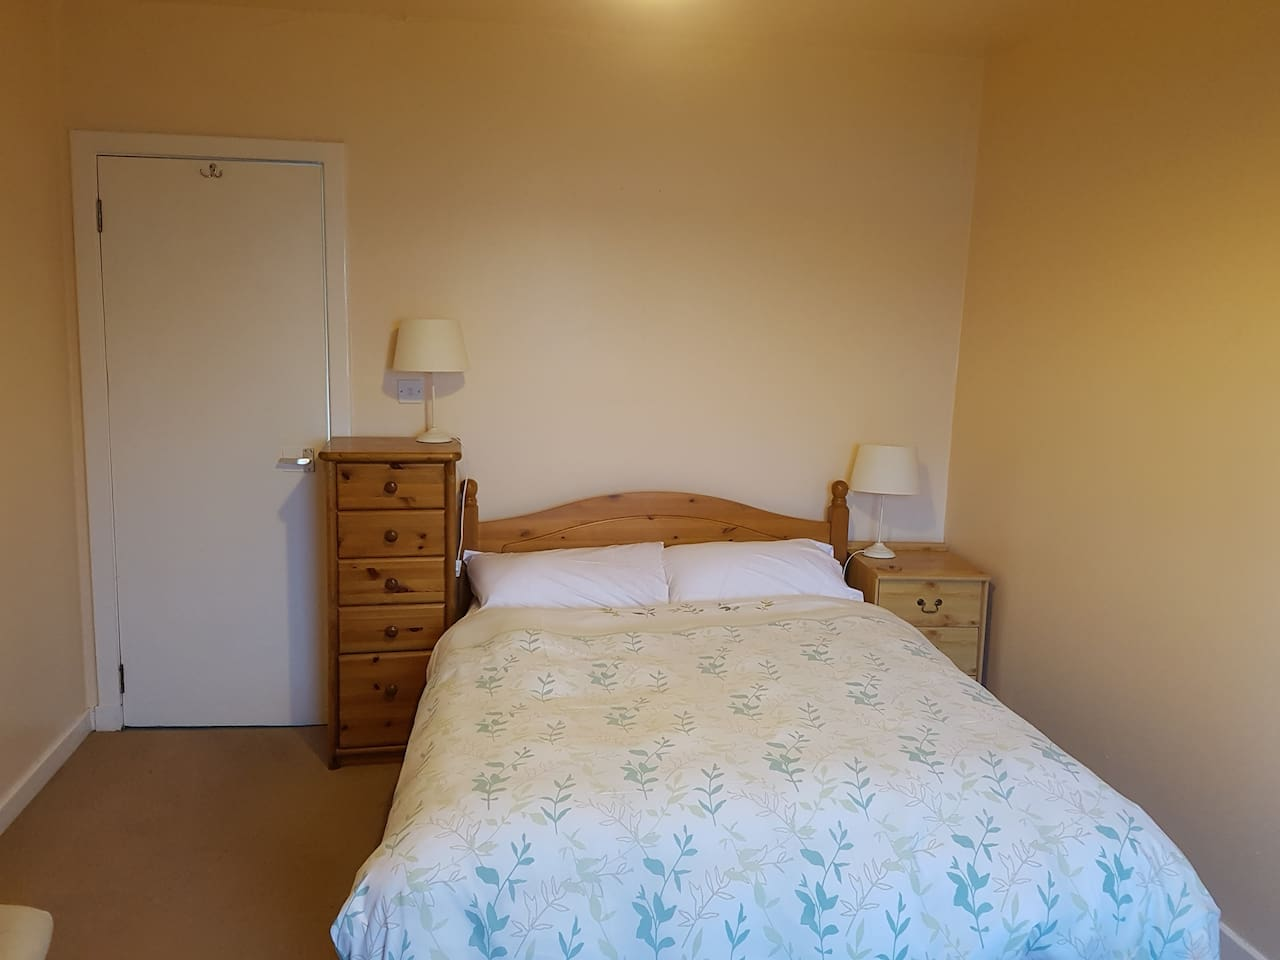 Guests enjoy a peaceful night's sleep in this comfortable bed with gorgeous views